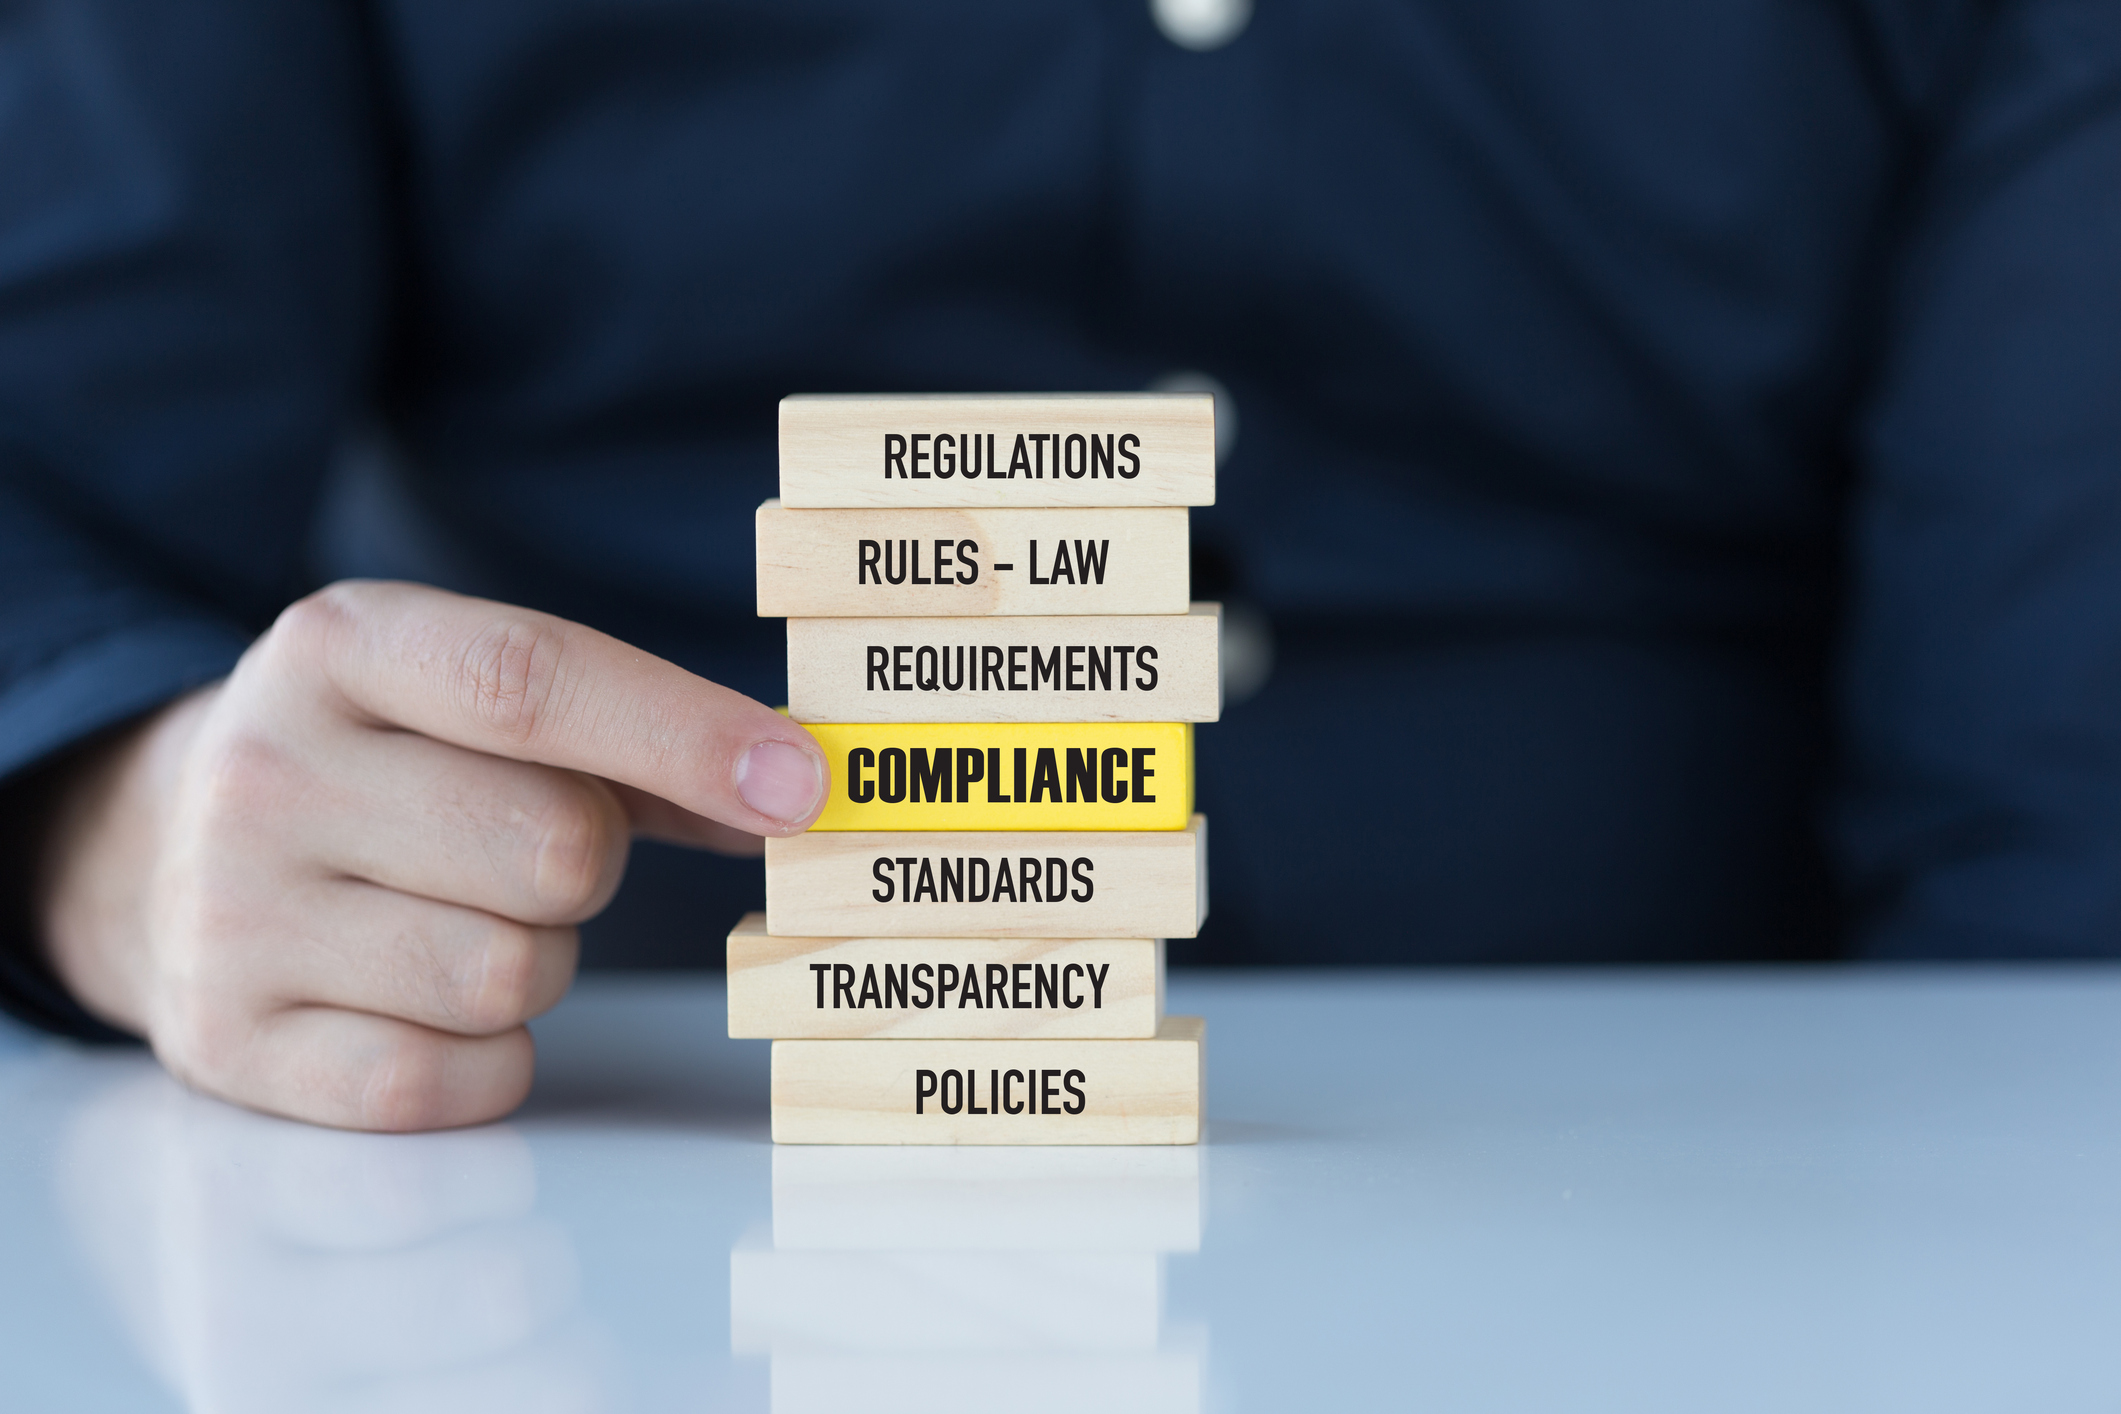 Compliance  - This is undoubtedly the biggest cause of stress from new practitioners and seasoned vets alike.   The requirements of being compliant with HIPAA and HiTech, OSHA, DEA, HR (and more!), are becoming increasingly difficult and changing frequently.  By joining together, we can provide true expert help in these areas.